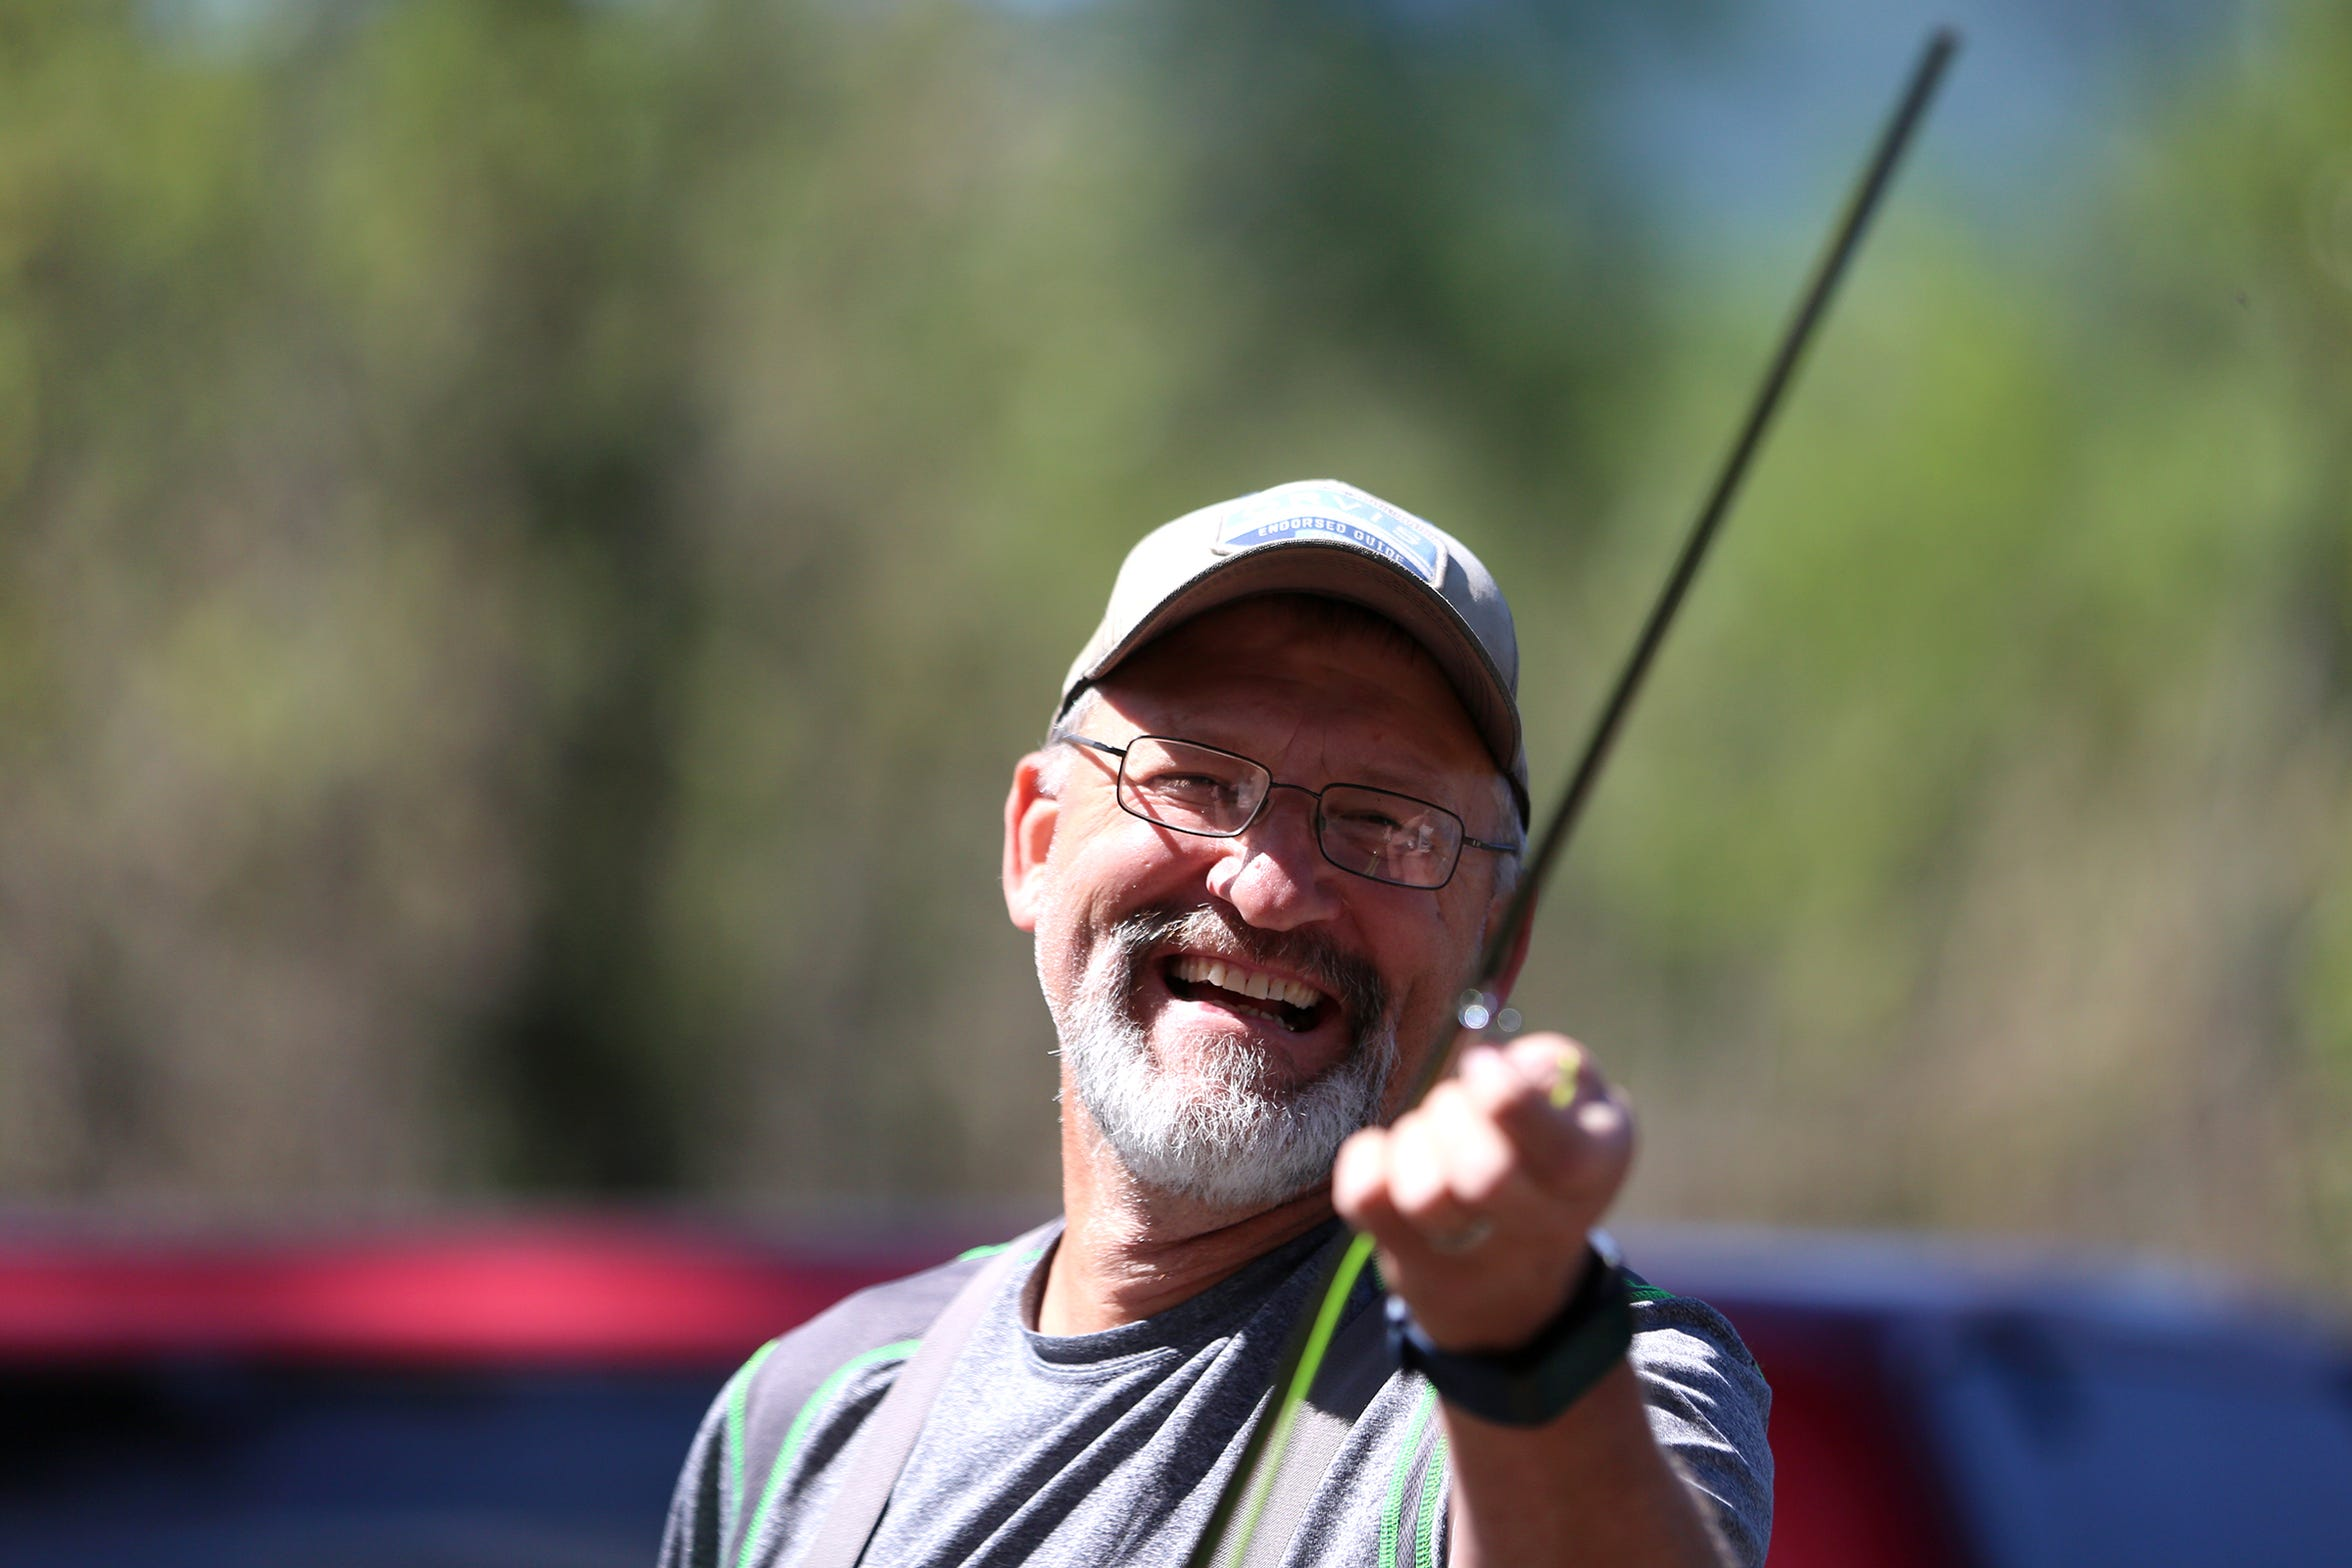 Dave Carpenter, a former fishing guide on the North Santiam River and long-time advocate for native fish, gets ready to fish at North Santiam State Recreation Area in Lyons on June 26, 2019.